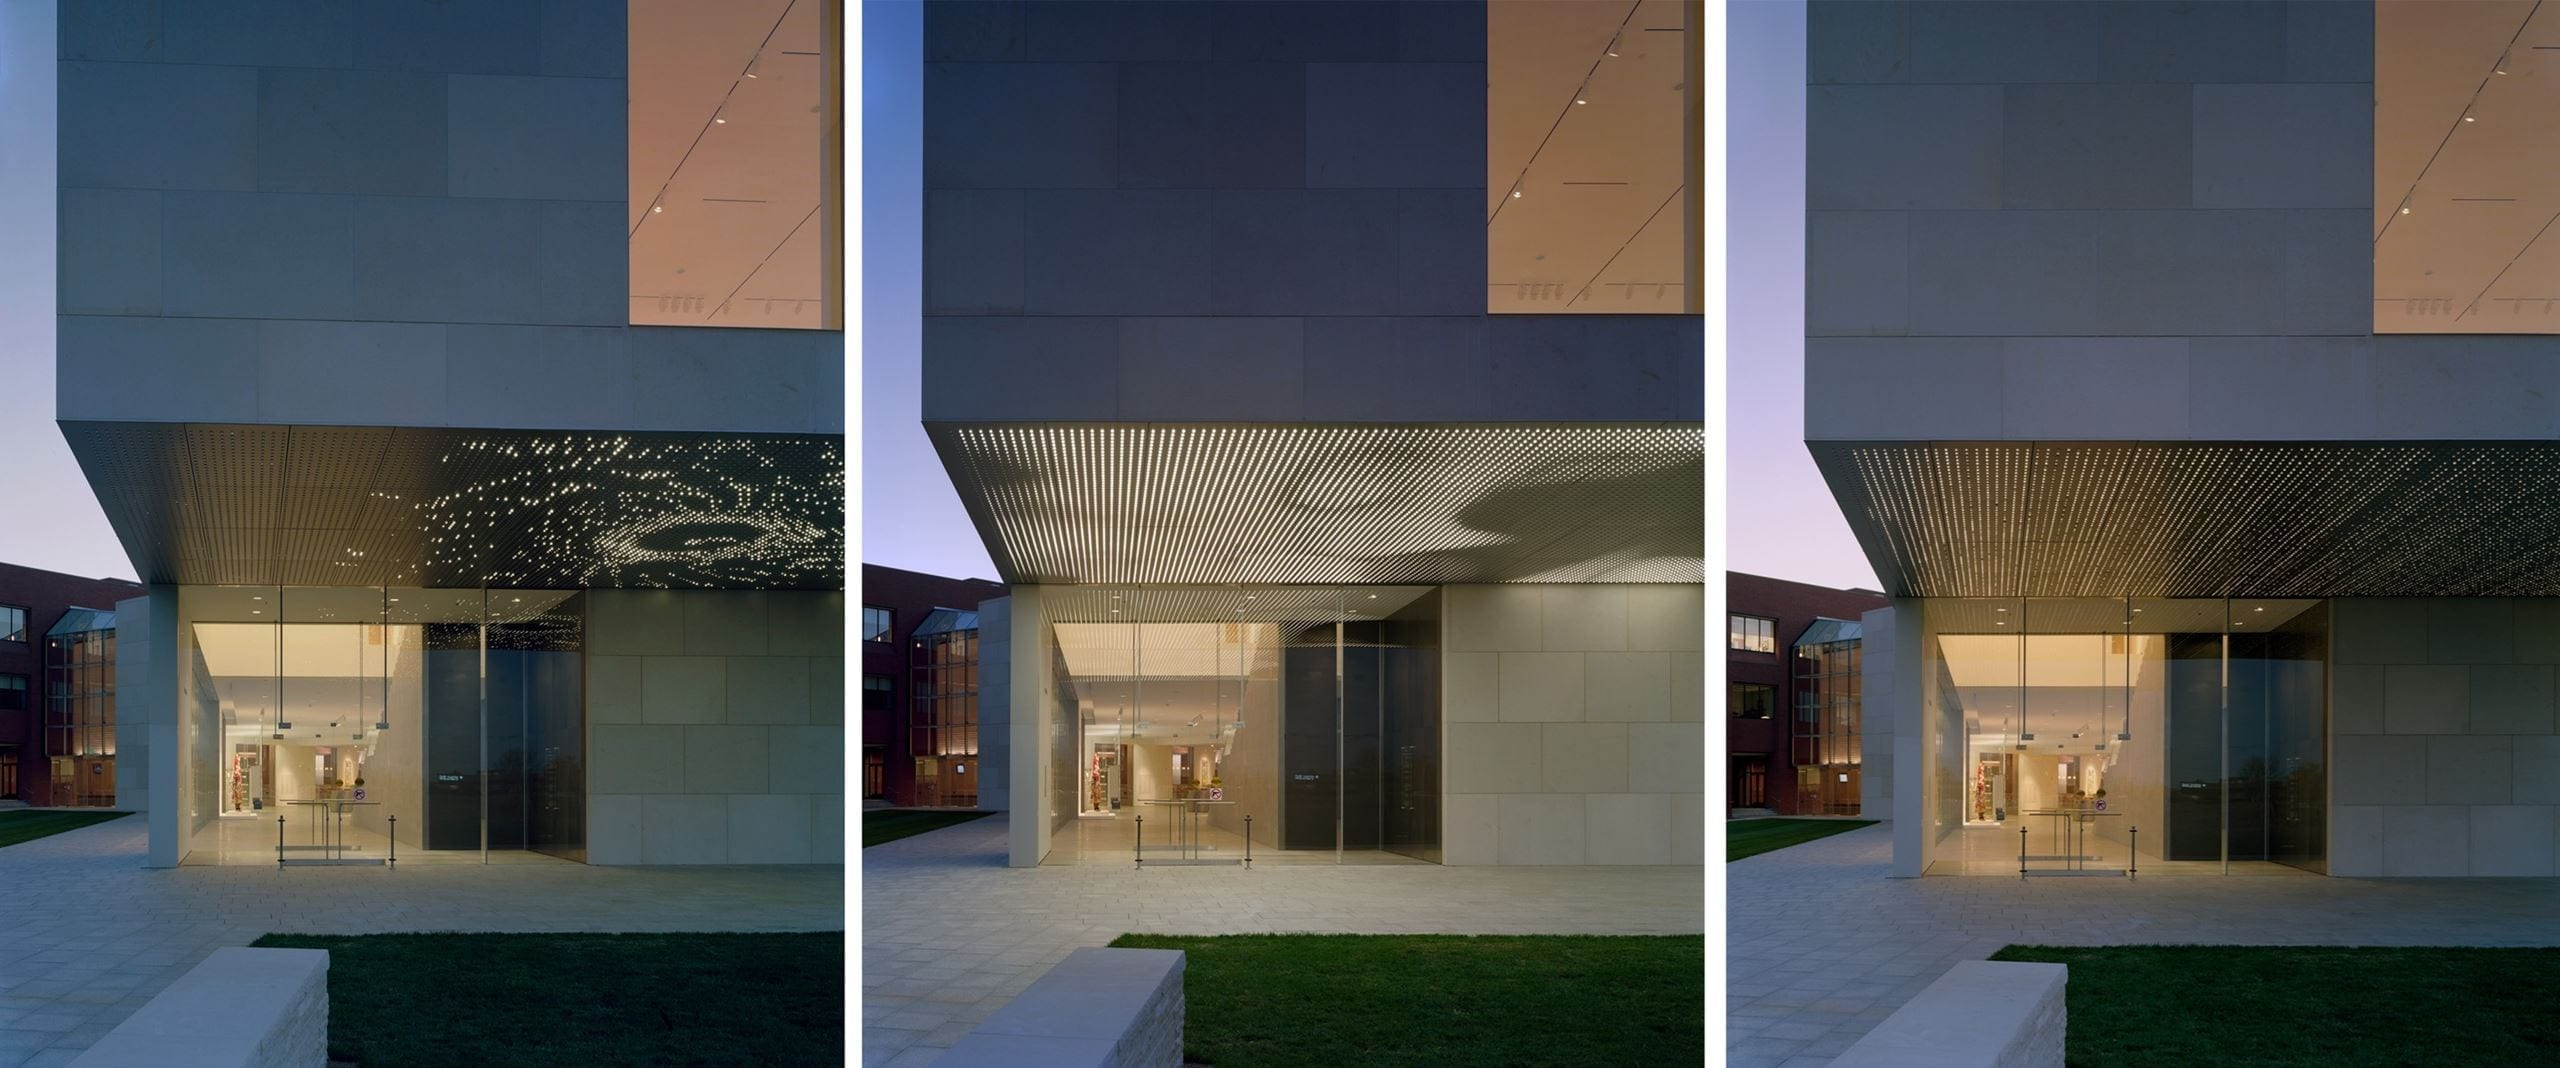 Photos of the kinetic light and soffit system developed for the Nerman Museum of Art.